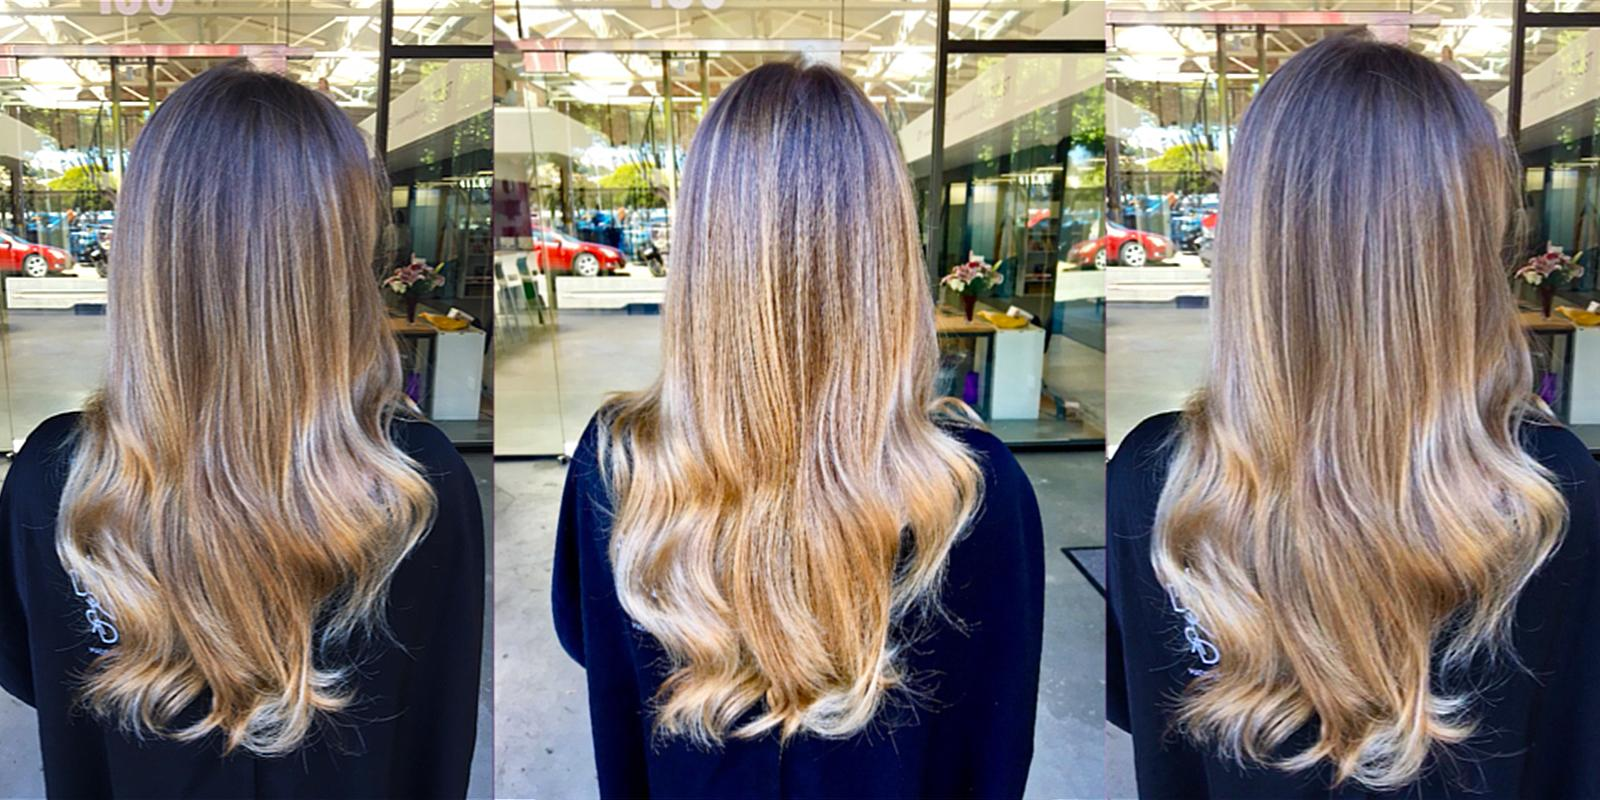 Balayage vs. highlights - balayage vs. foils: what's the difference?